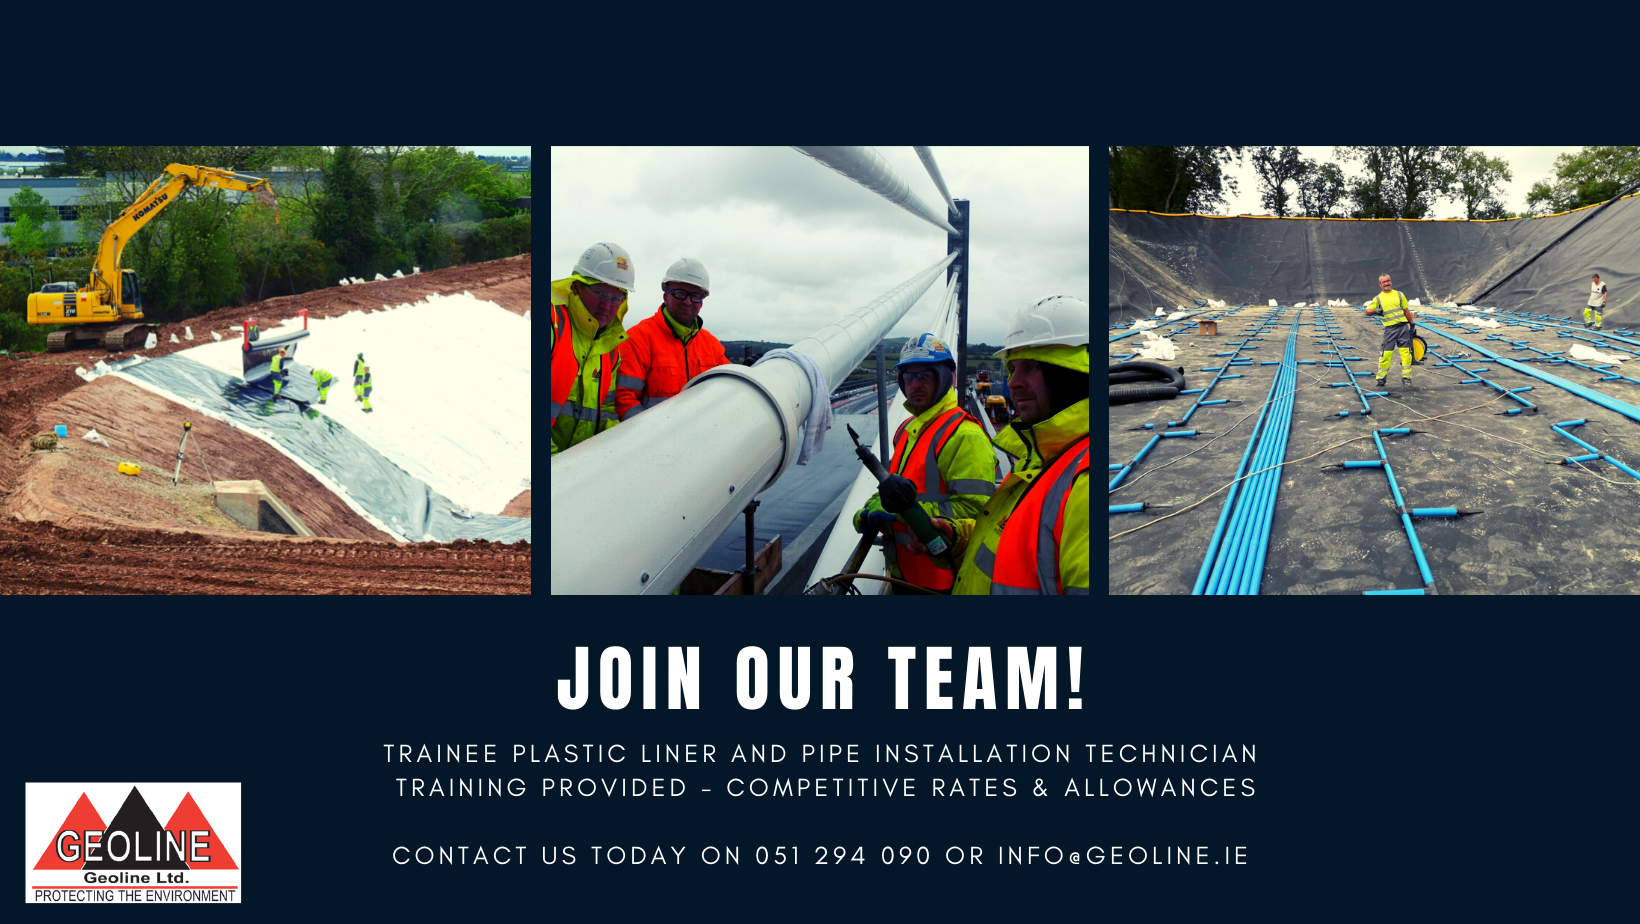 Trainee Plastic Liner And Pipe Installation Technician Poster